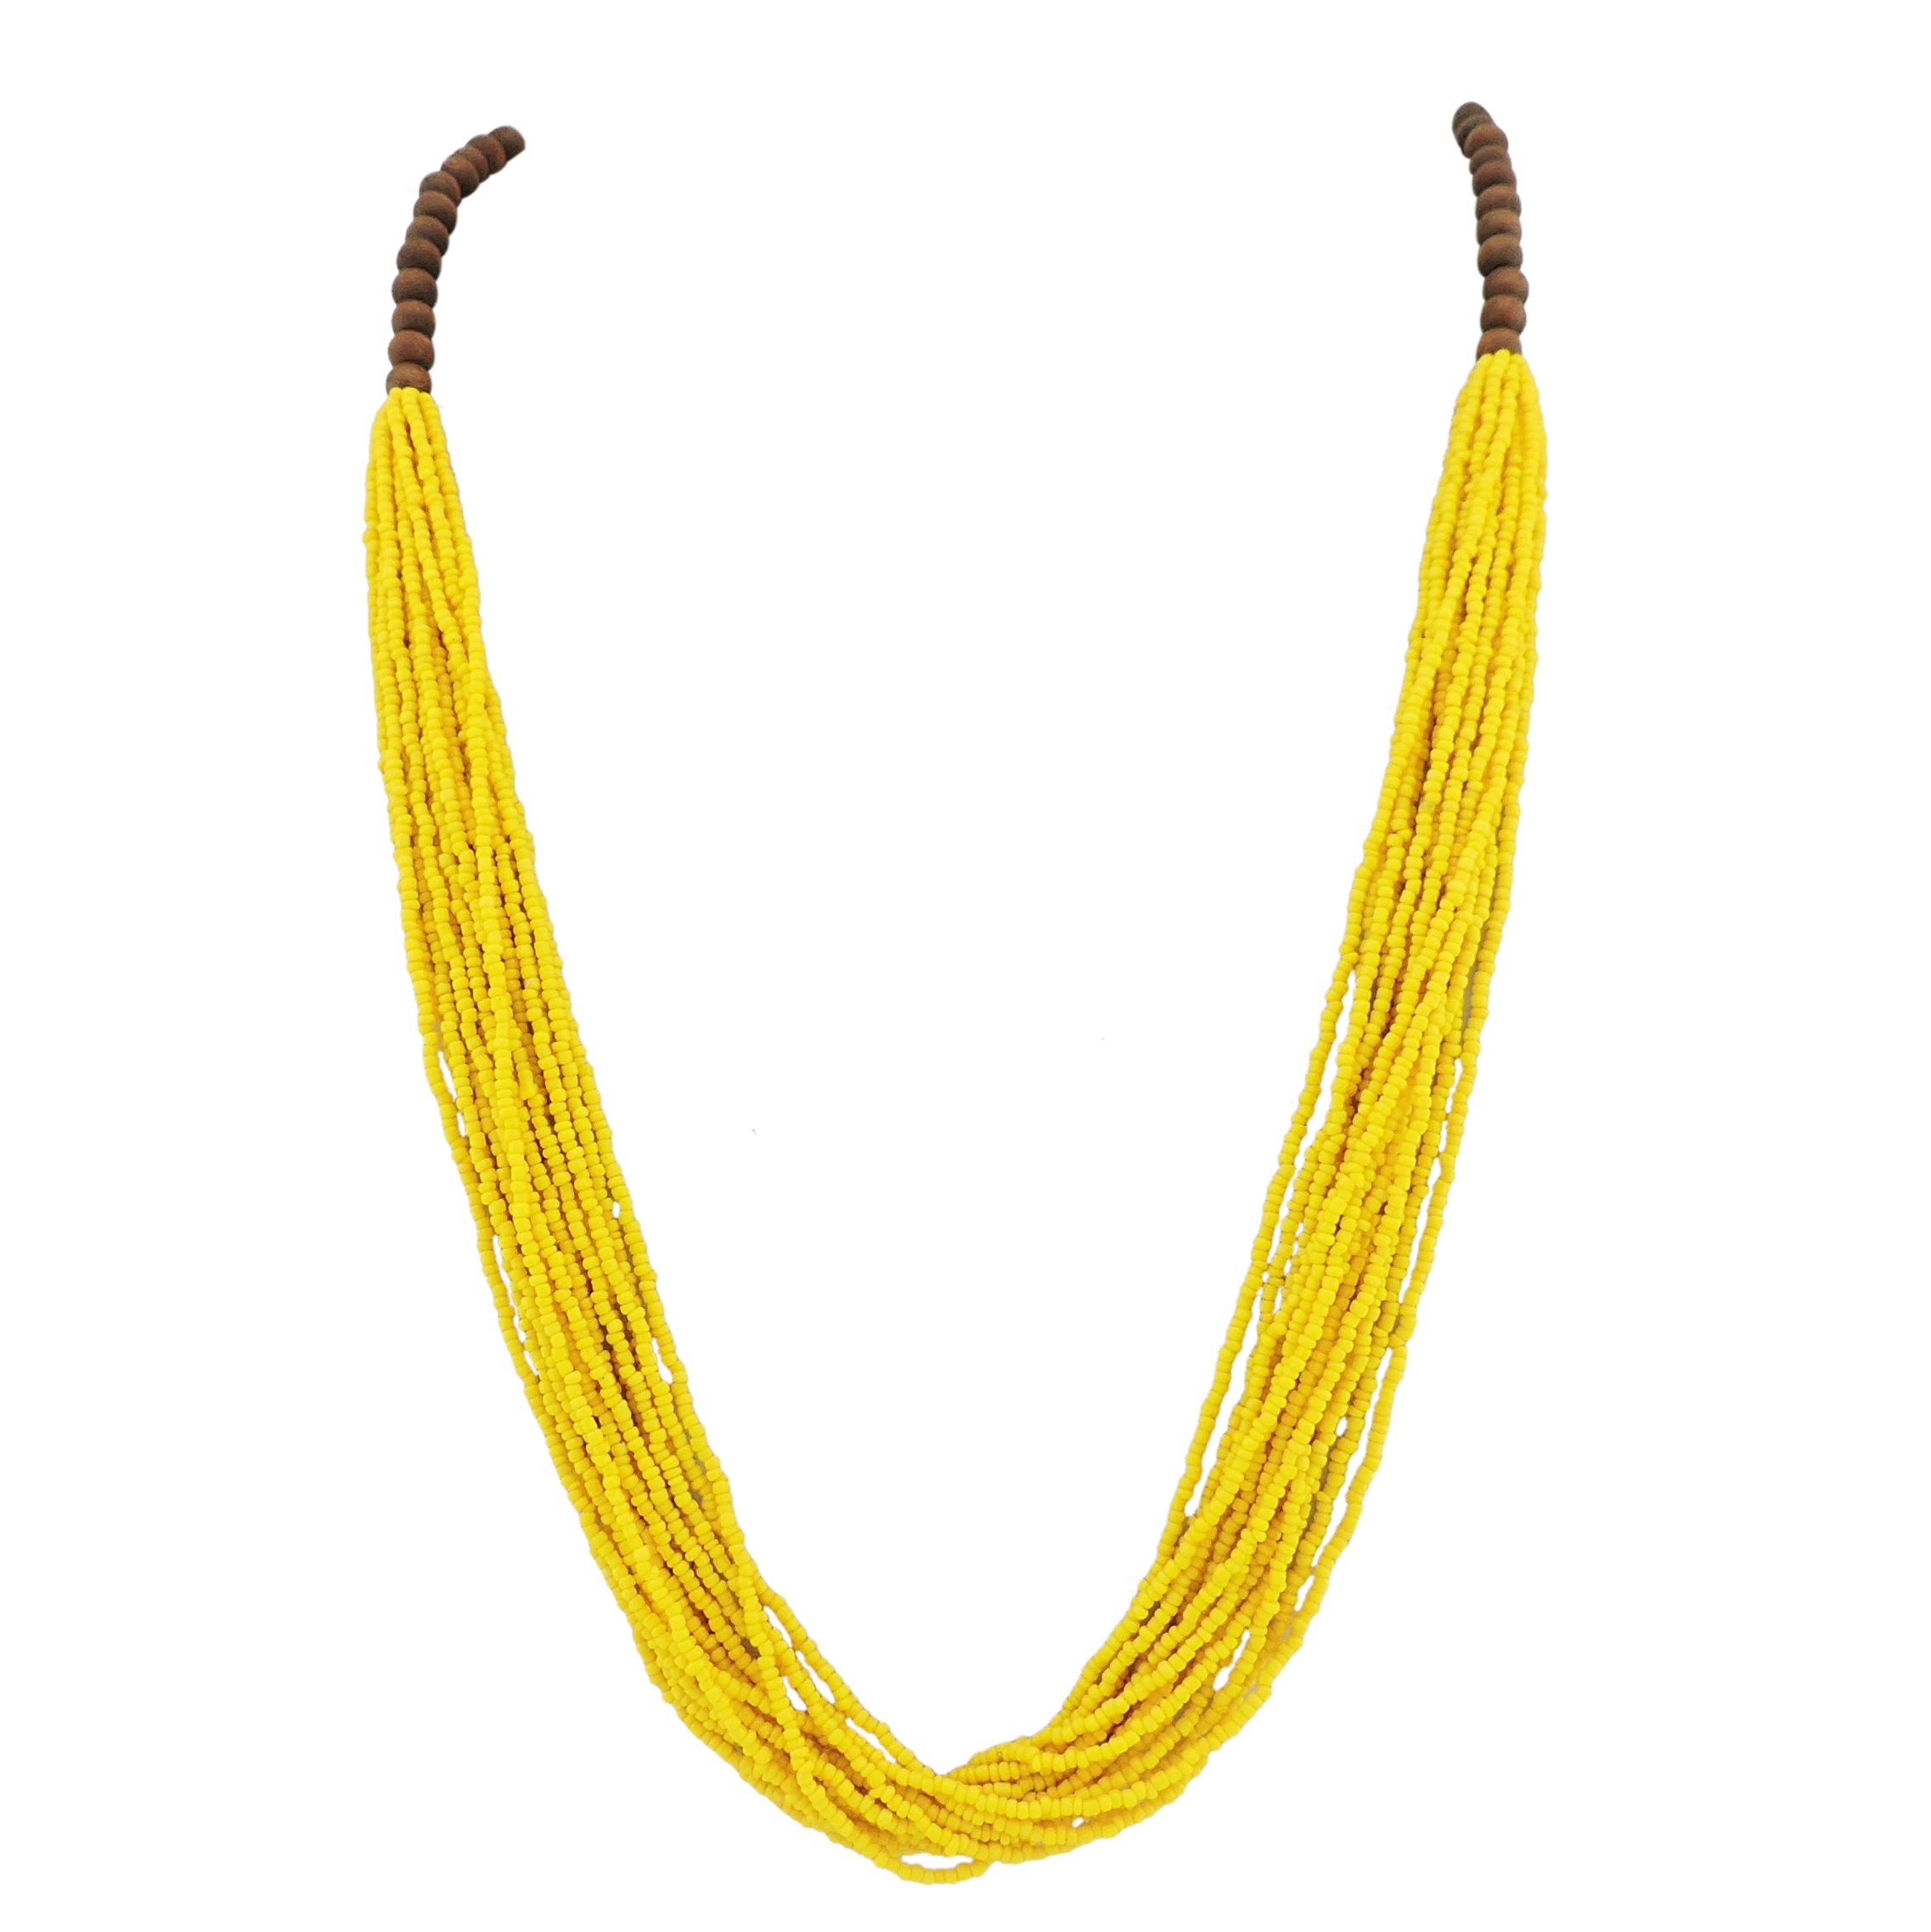 Bocar Long Multiple Row Handmade Beaded Statement Necklace with Gift Box (NK-10407-yellow) by Bocar